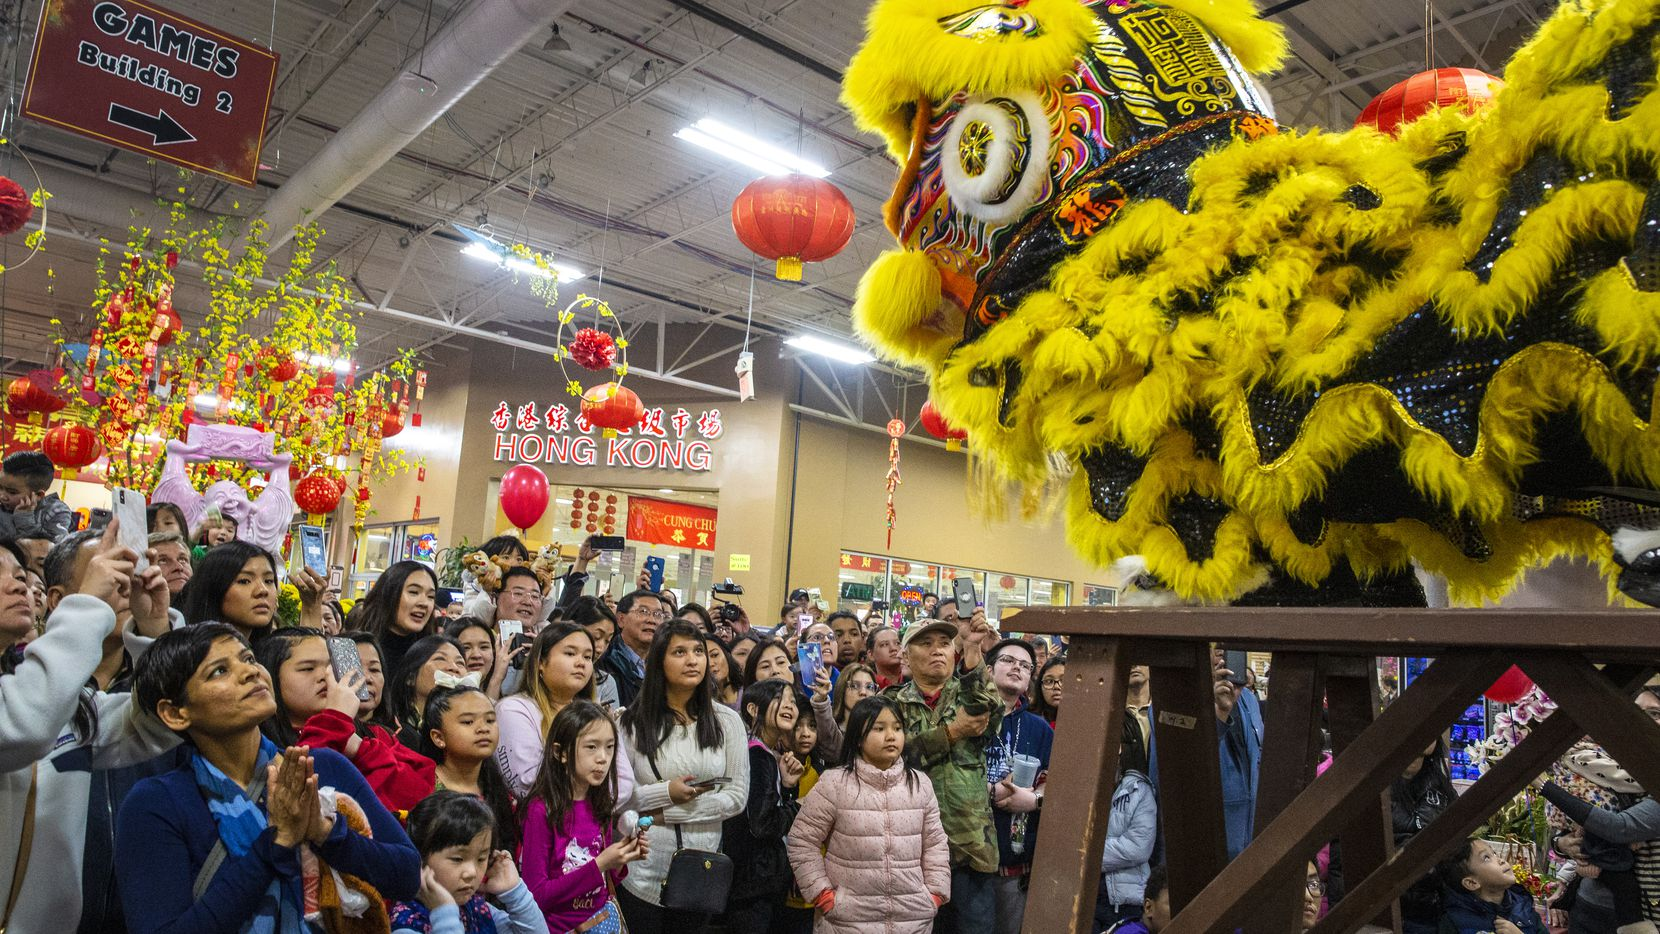 Spectators watch as people with the Jiu Long Sports Association put on a performance during Lunar New Year Festival at Asia Times Square in Grand Prairie, Texas on Jan. 26, 2019. The Jiu Long Sports Association aims to share Asian culture.